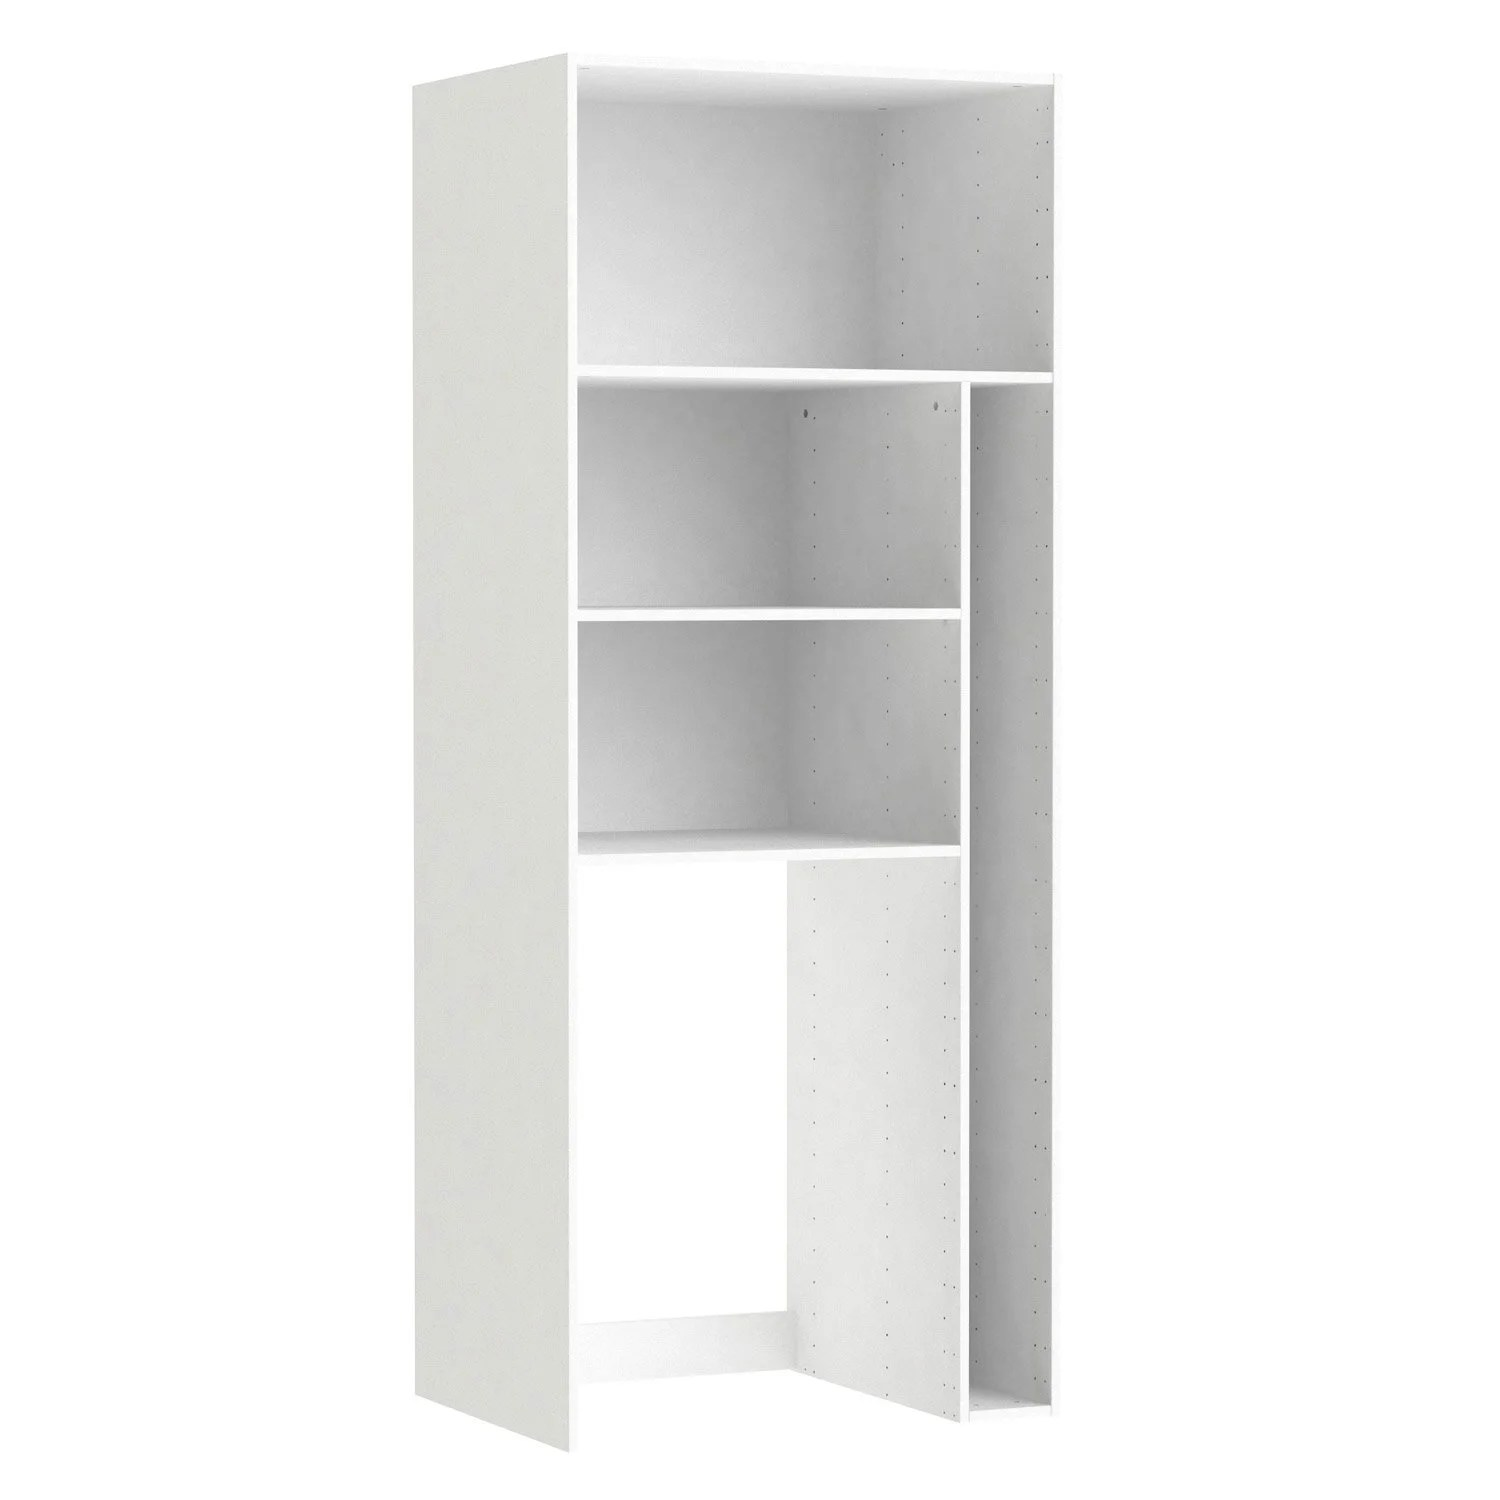 Caisson Spaceo Home Leroy Merlin Caisson Buanderie Spaceo Home 200 X 80 X 60 Cm Blanc